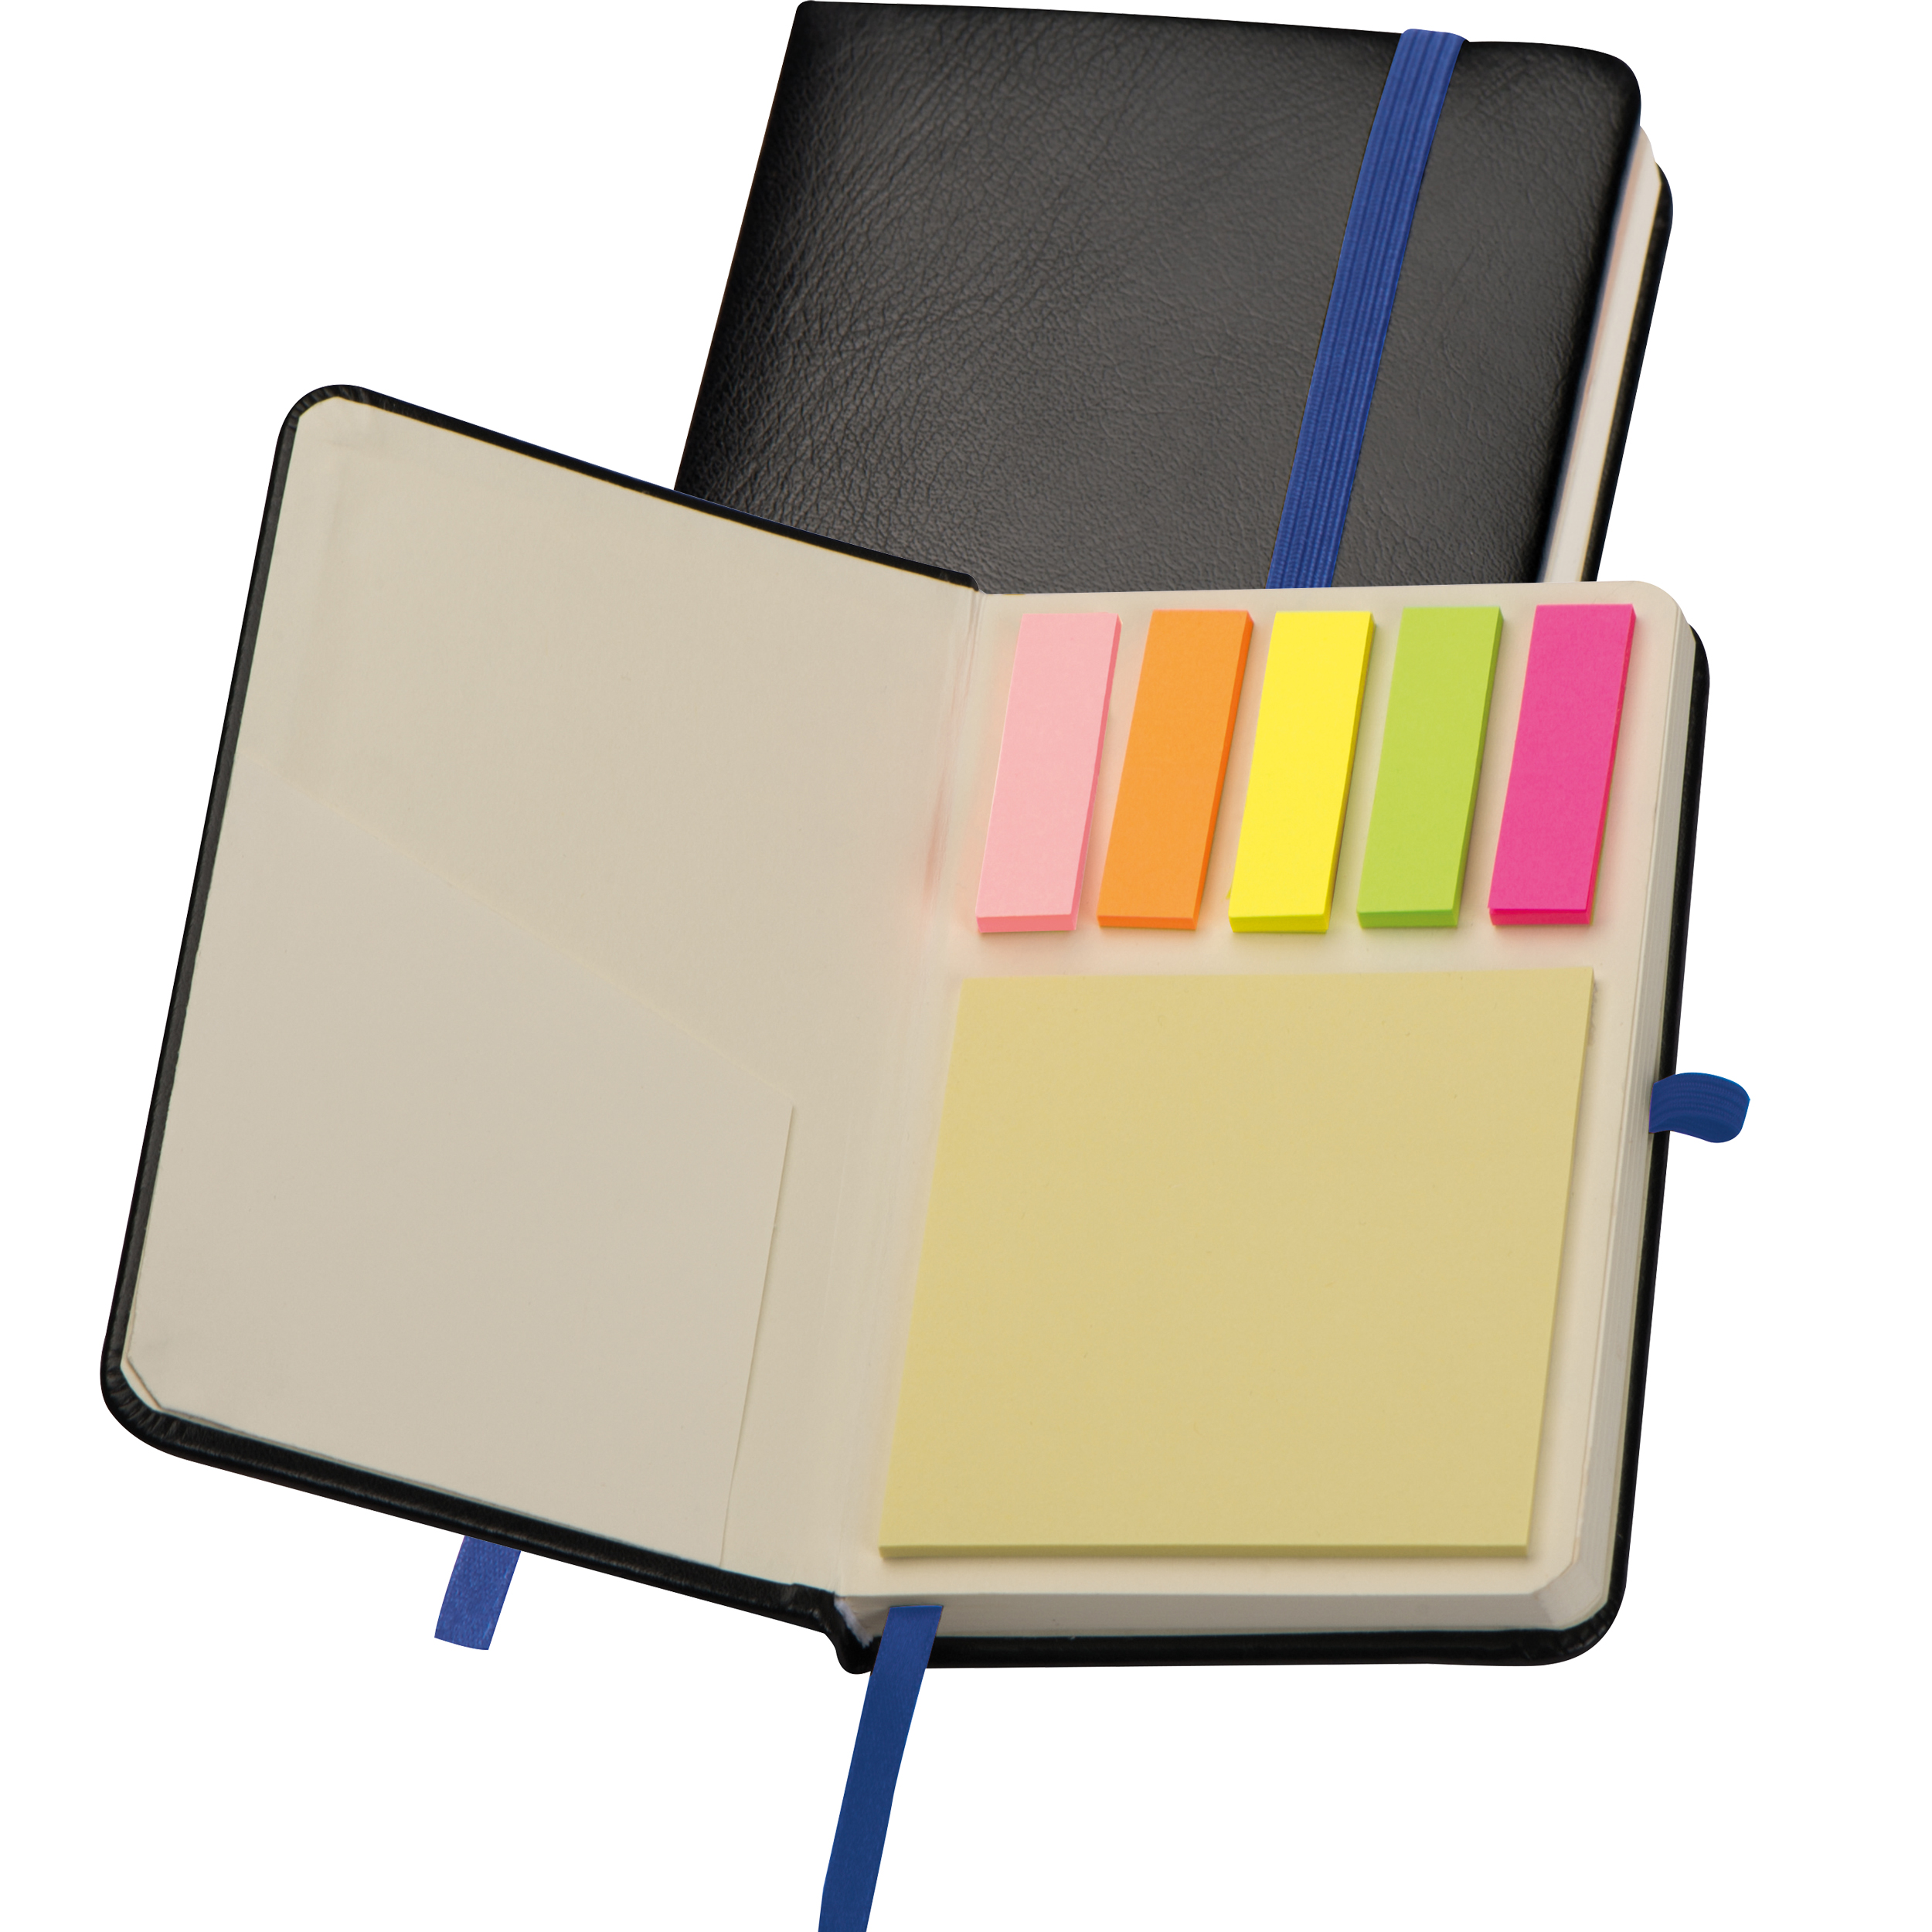 A6 notebook with sticky notes